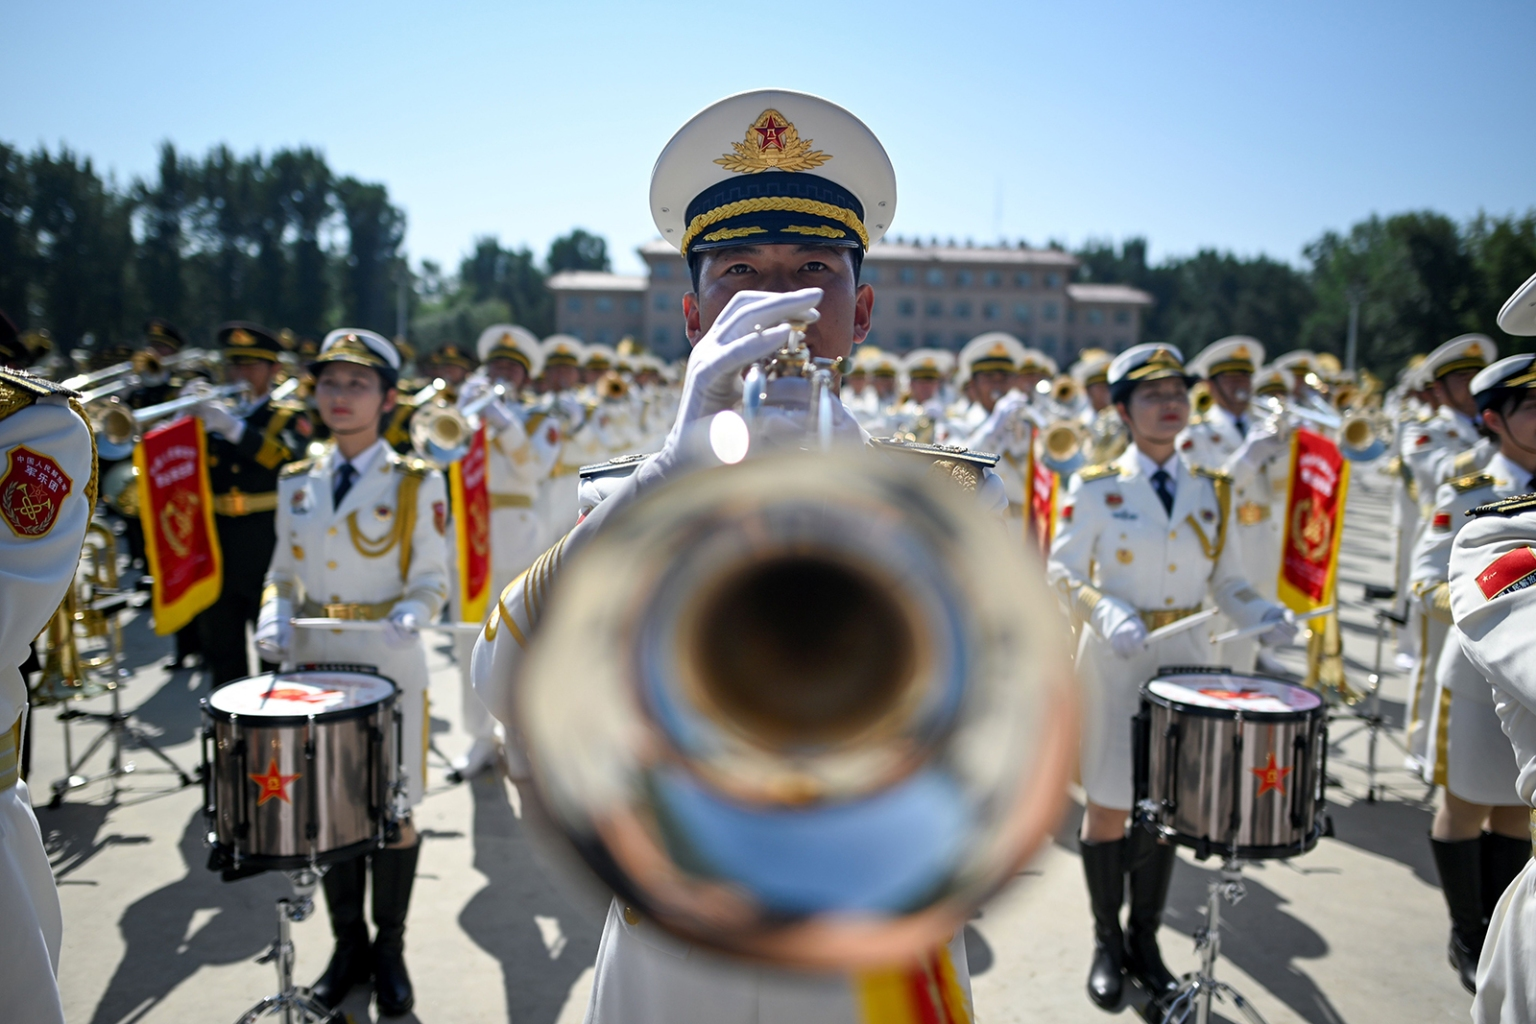 A member of a Chinese military band performs during a tour arranged for the media in celebration of the 70th anniversary of the country's founding at a camp on the outskirts of Beijing on Sept. 25. WANG ZHAO/AFP/Getty Images